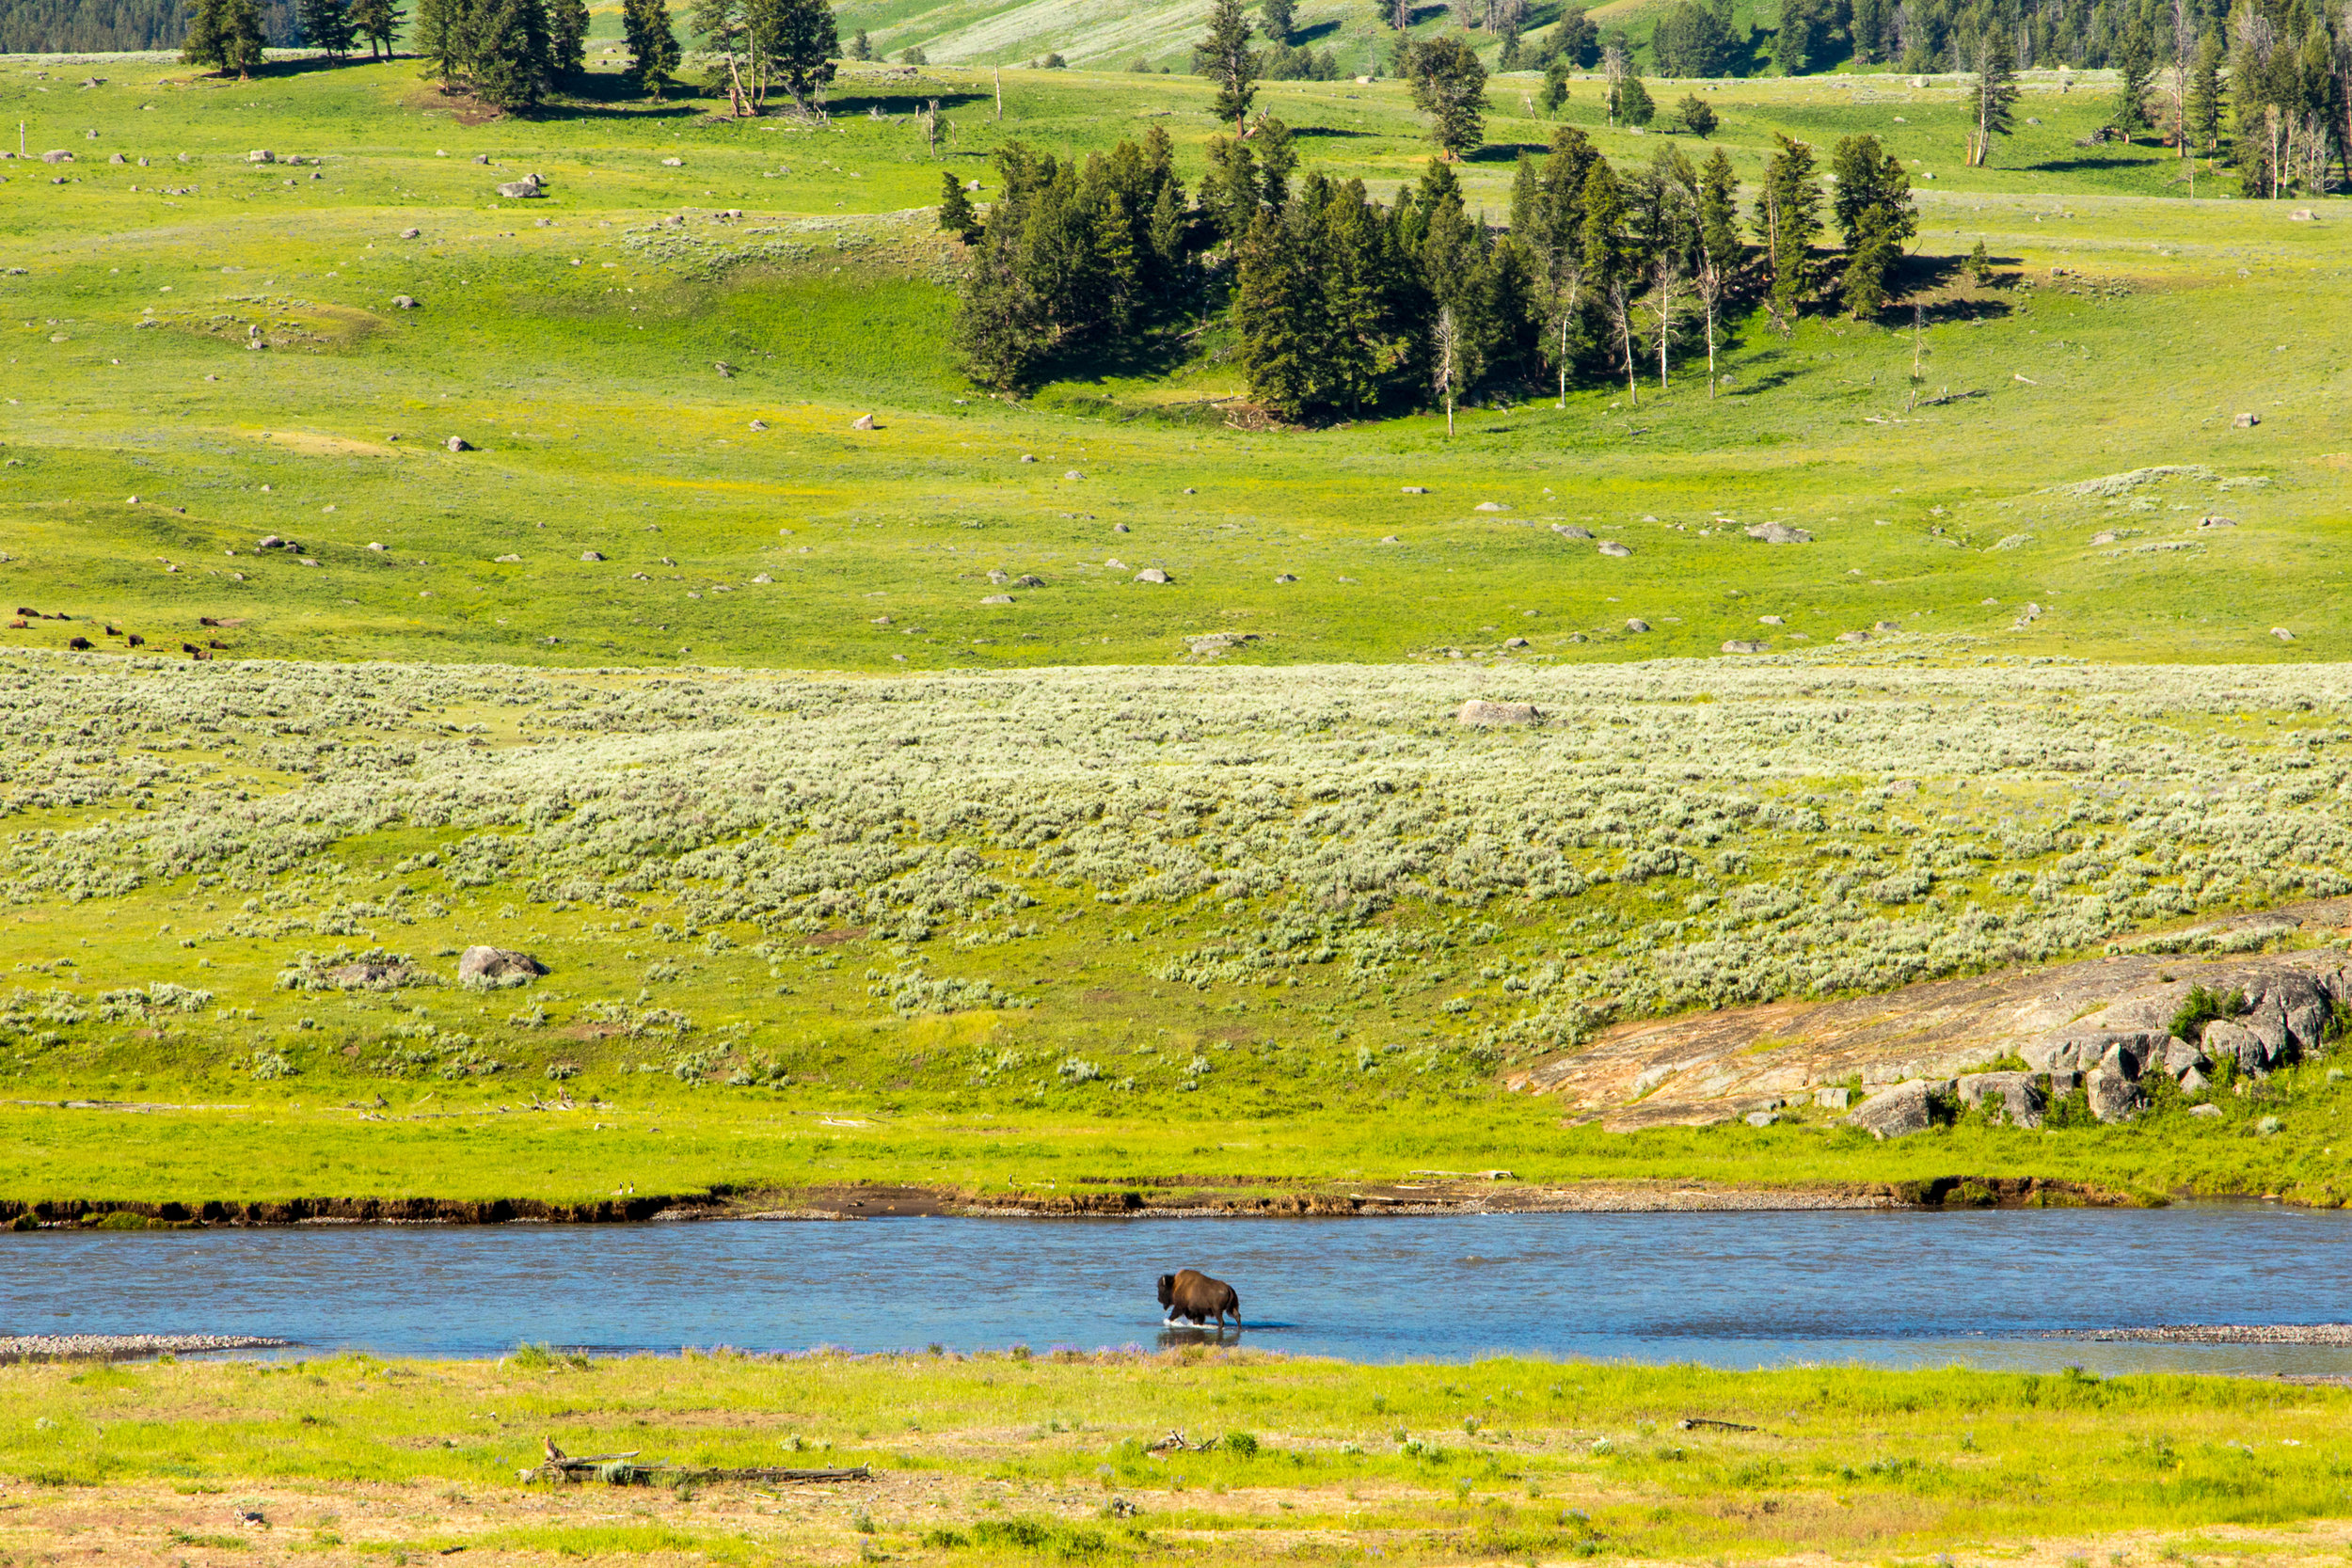 Lamar Valley, Yellowstone National Park, Image # 6914